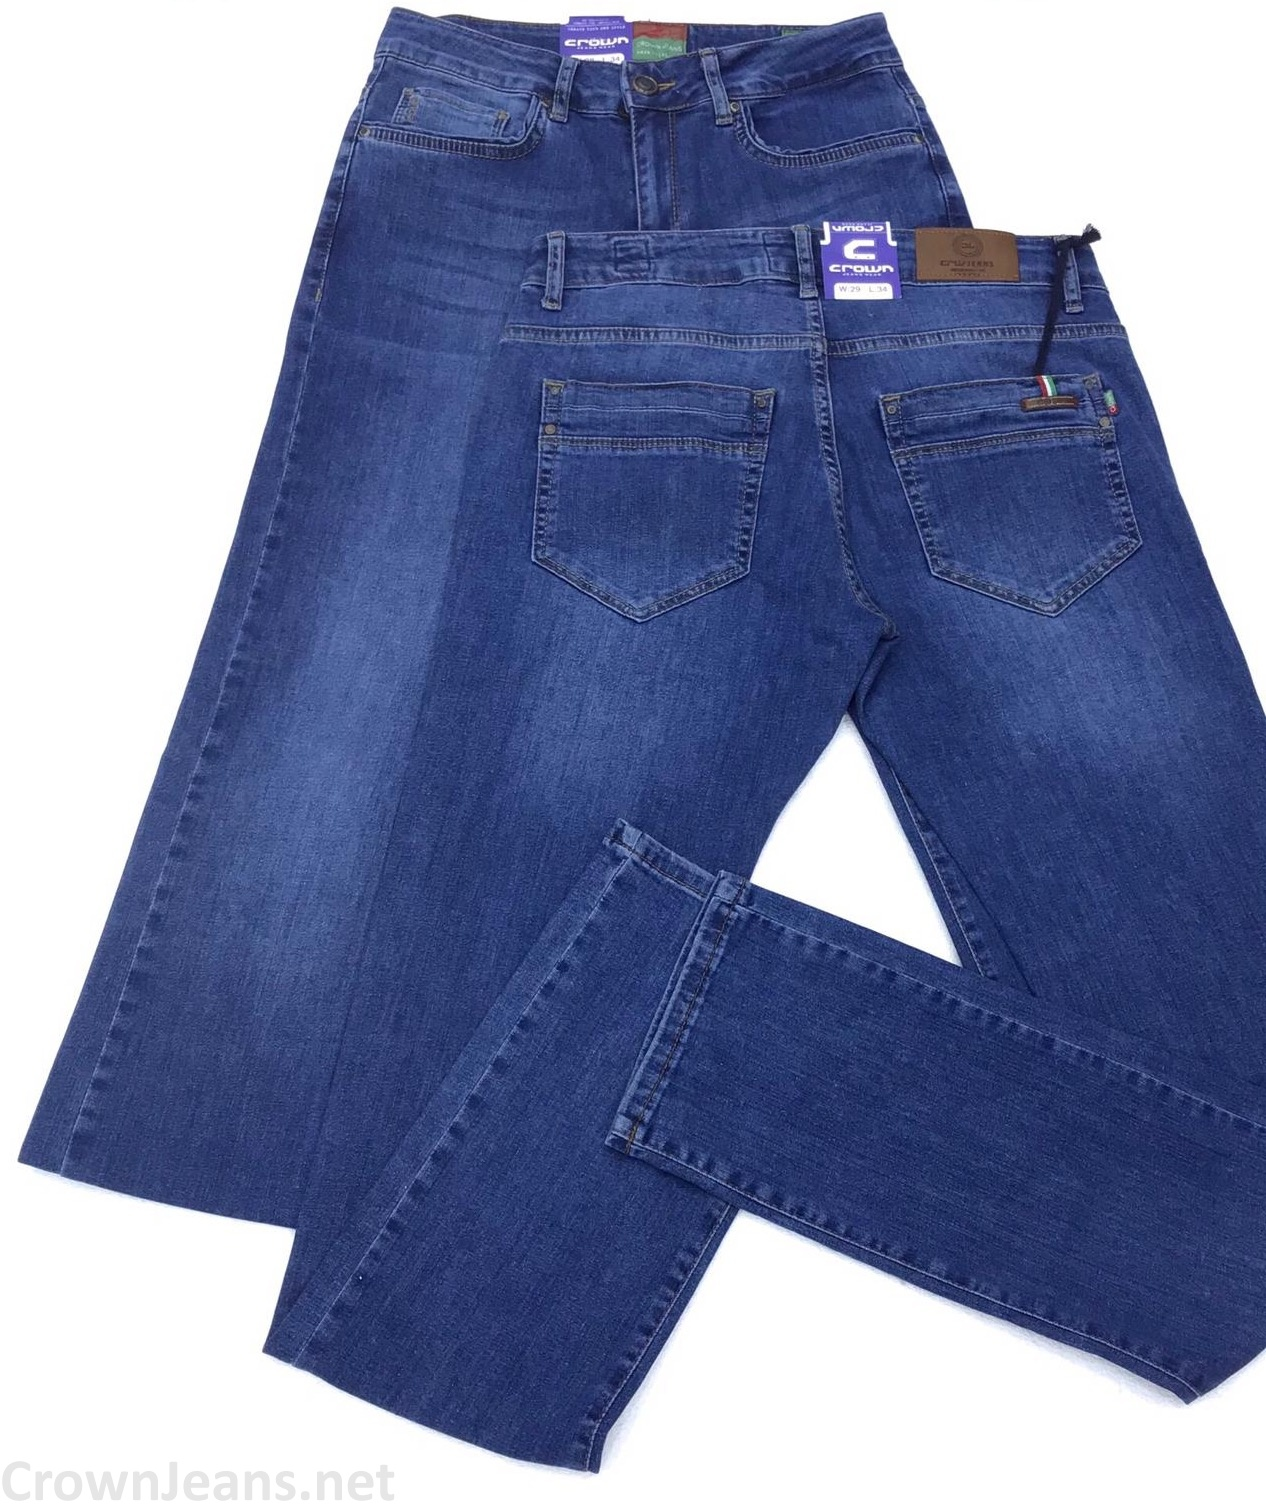 Джинсы Crown 106 Febris от Crown Jeans